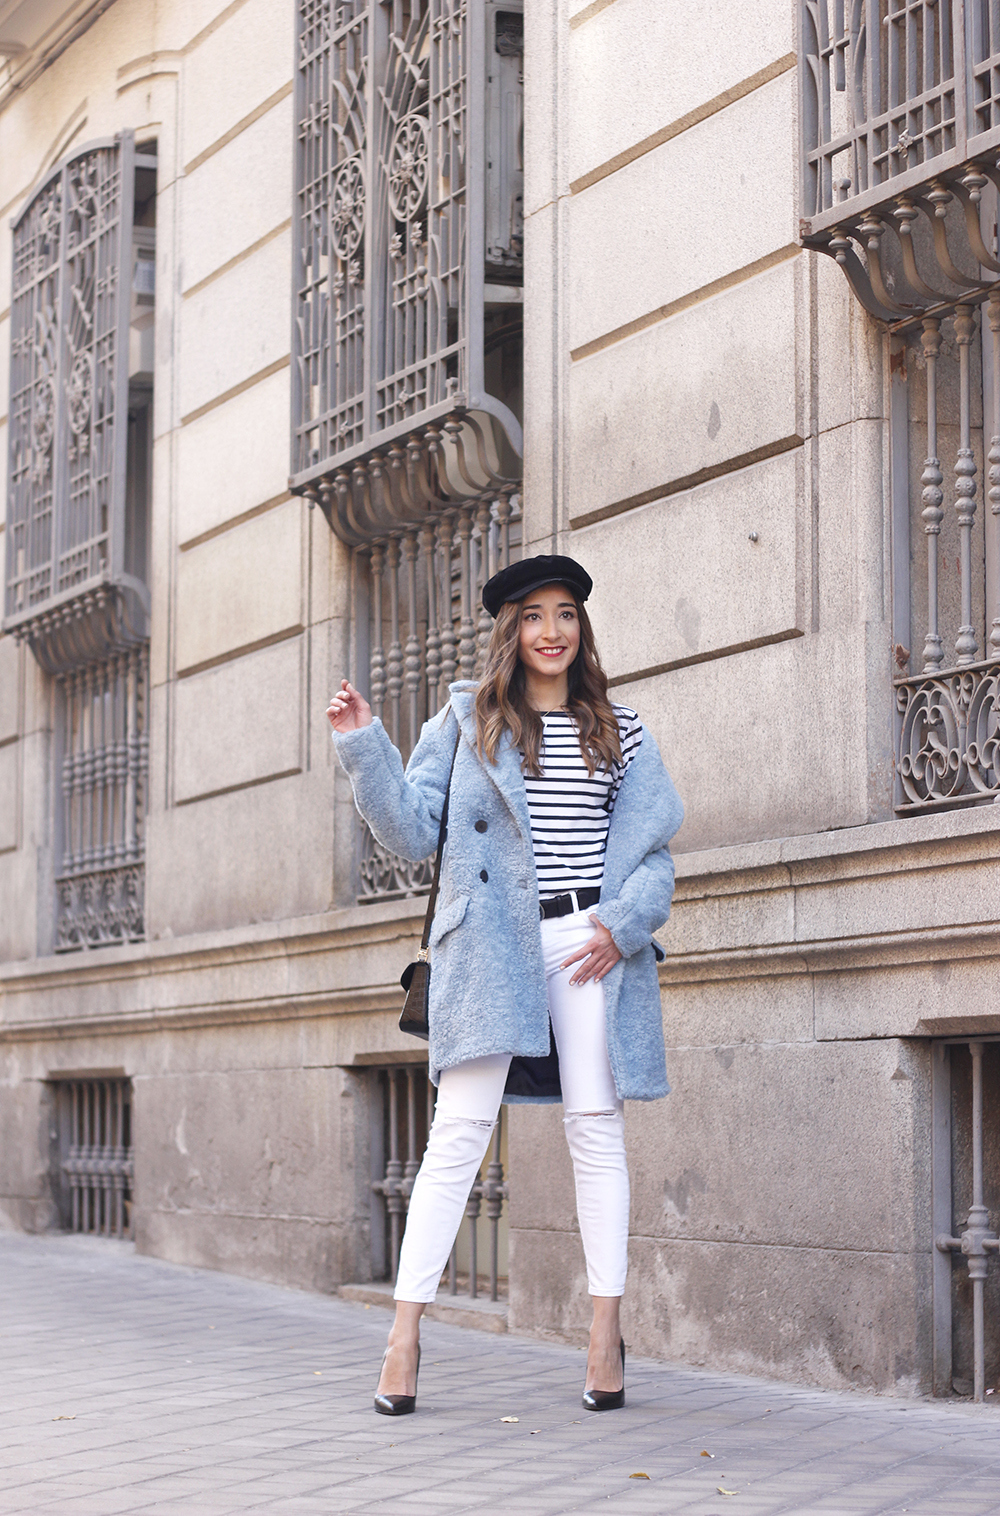 blue fur coat stripes white ripped jeans givenchy bag navy cap fall outfit street style03